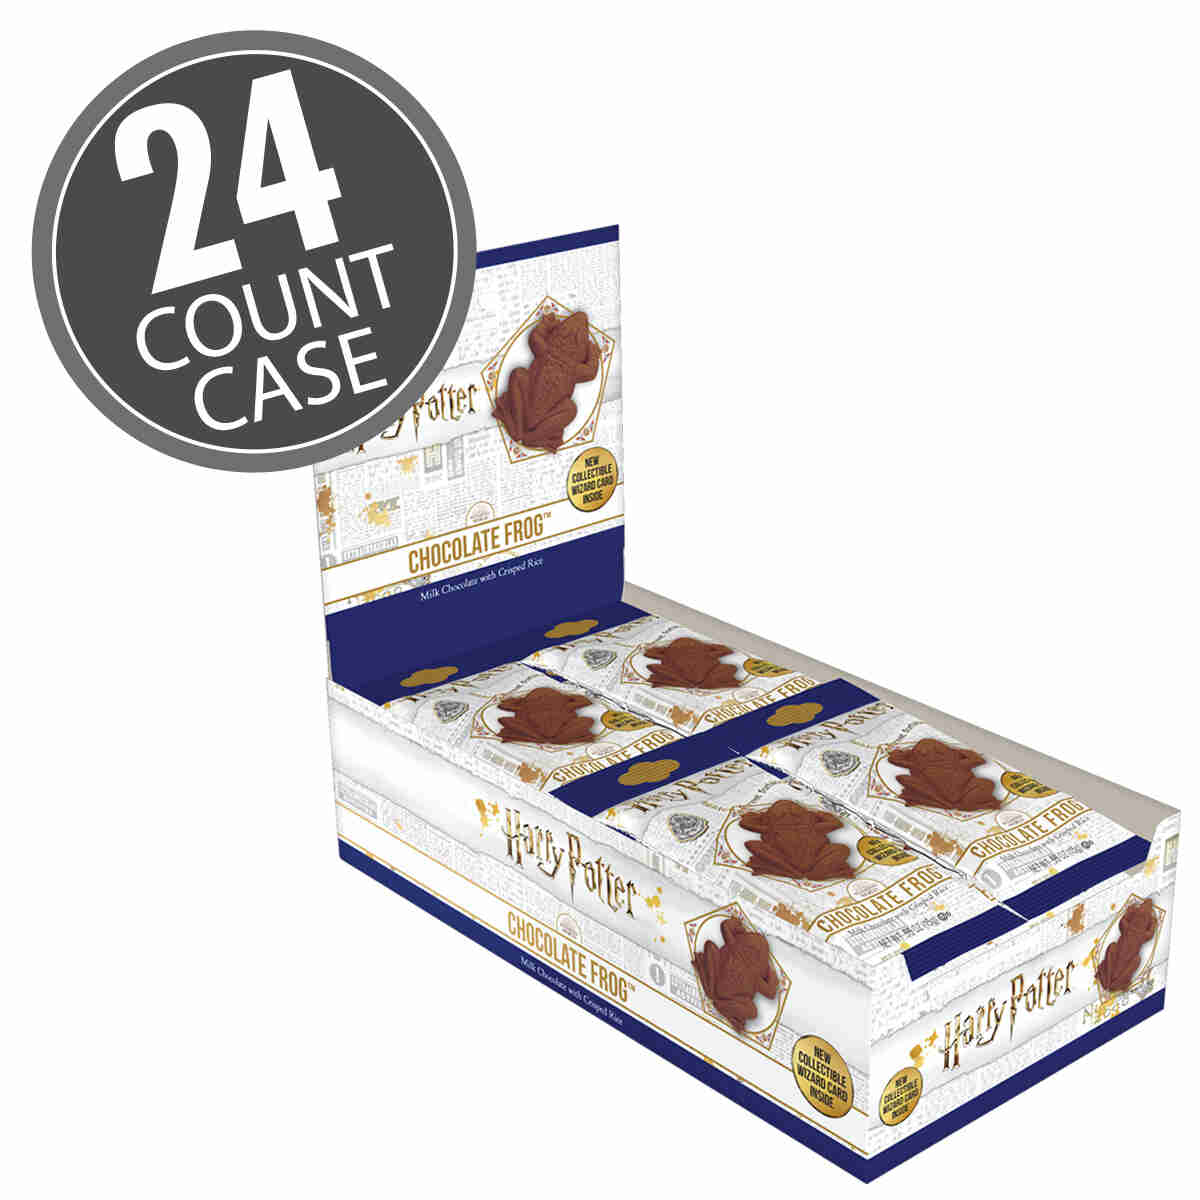 Harry Potter Bertie Bott's Jelly Beans and Candy